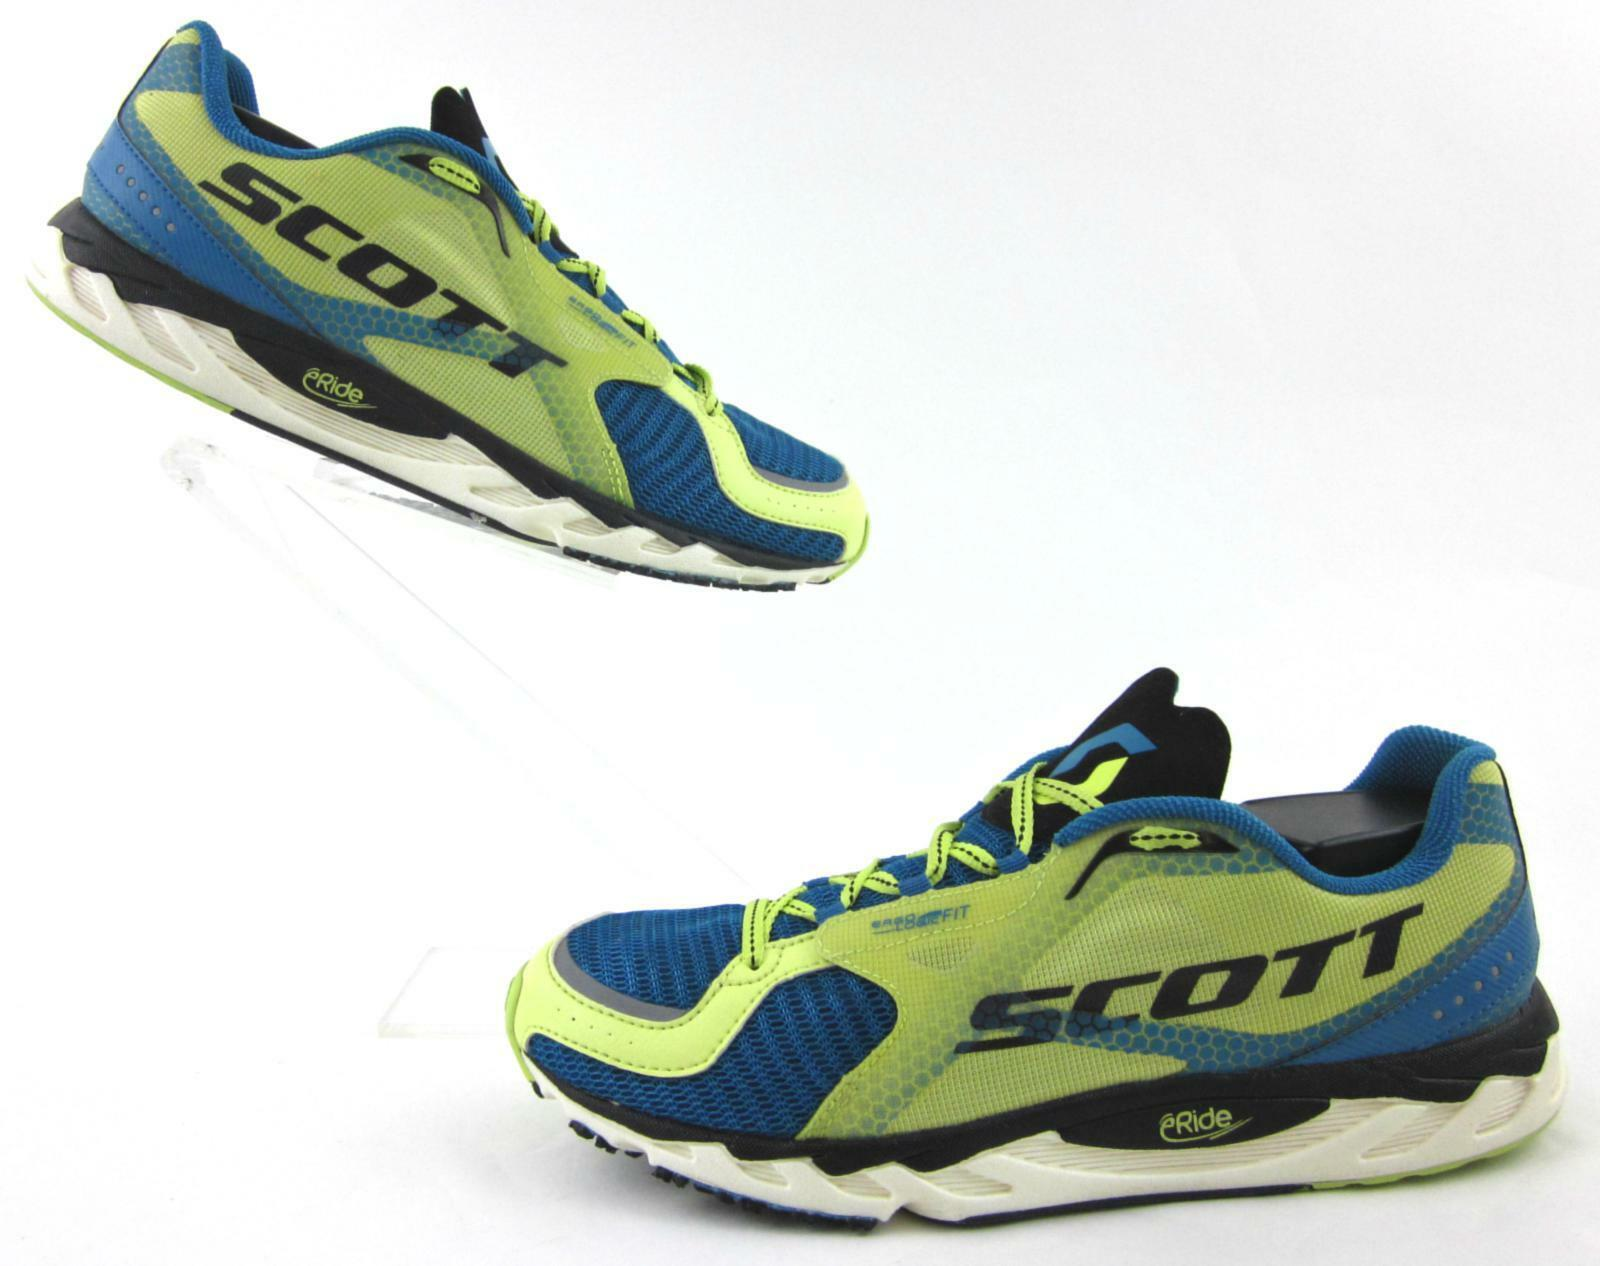 SCOTT eRIDE AF Running Shoes Marine Blue Yellow Womens Specific Fit US 10